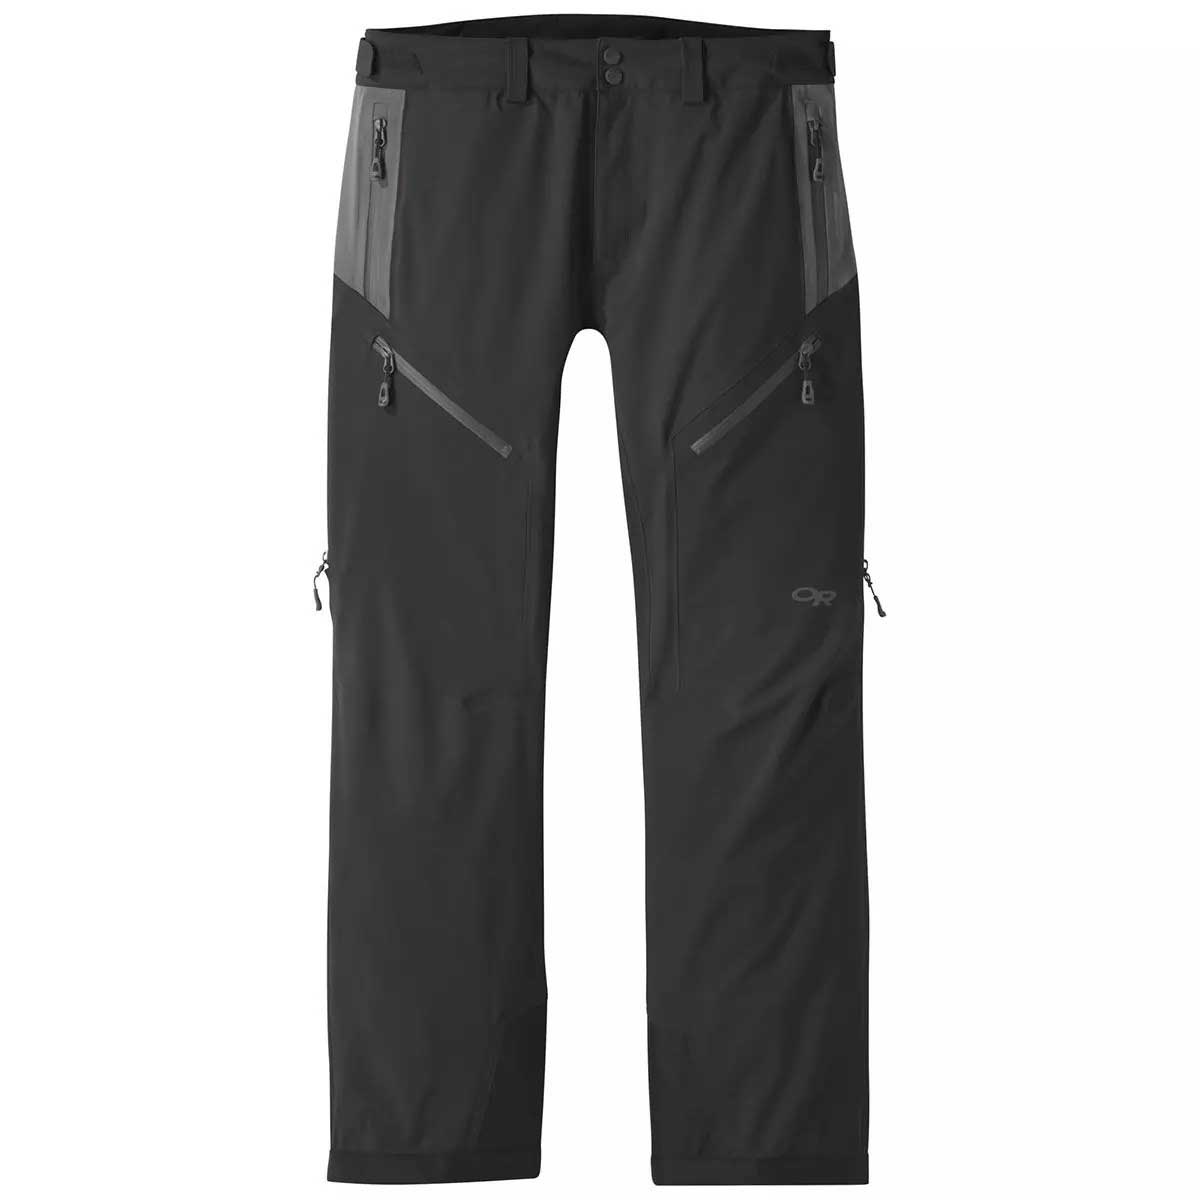 Outdoor Research Skyward II Men's Pant in Black